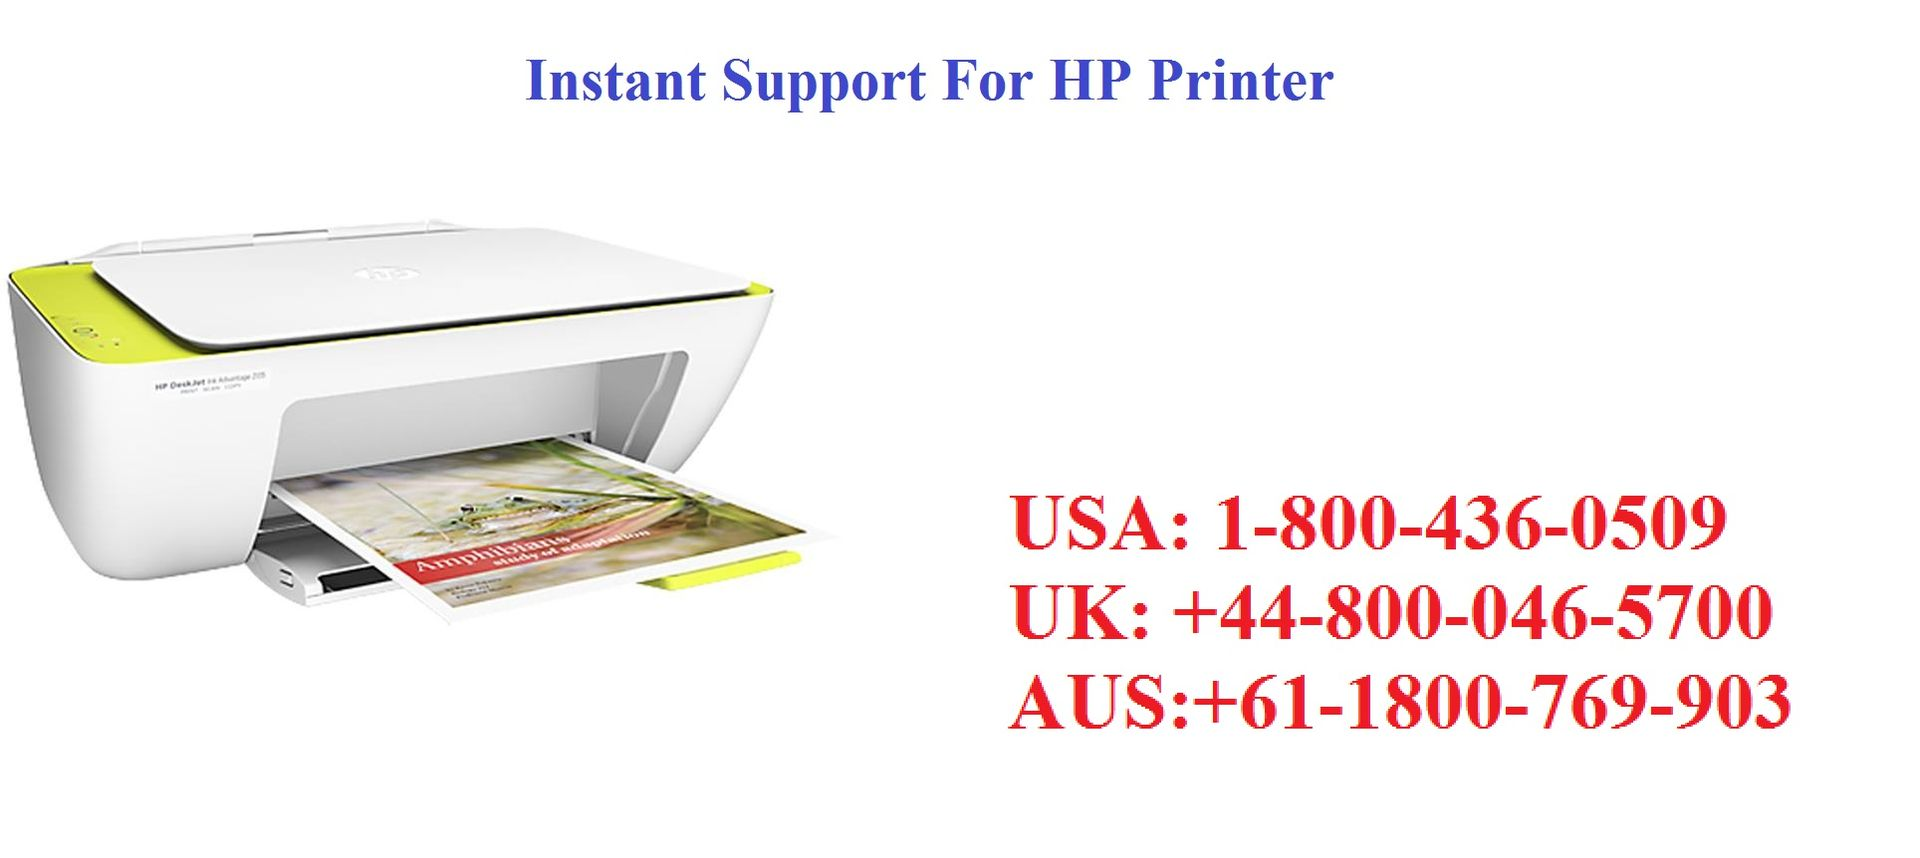 HP Printer Technical Support Number 1-800-436-0509 Toll Free